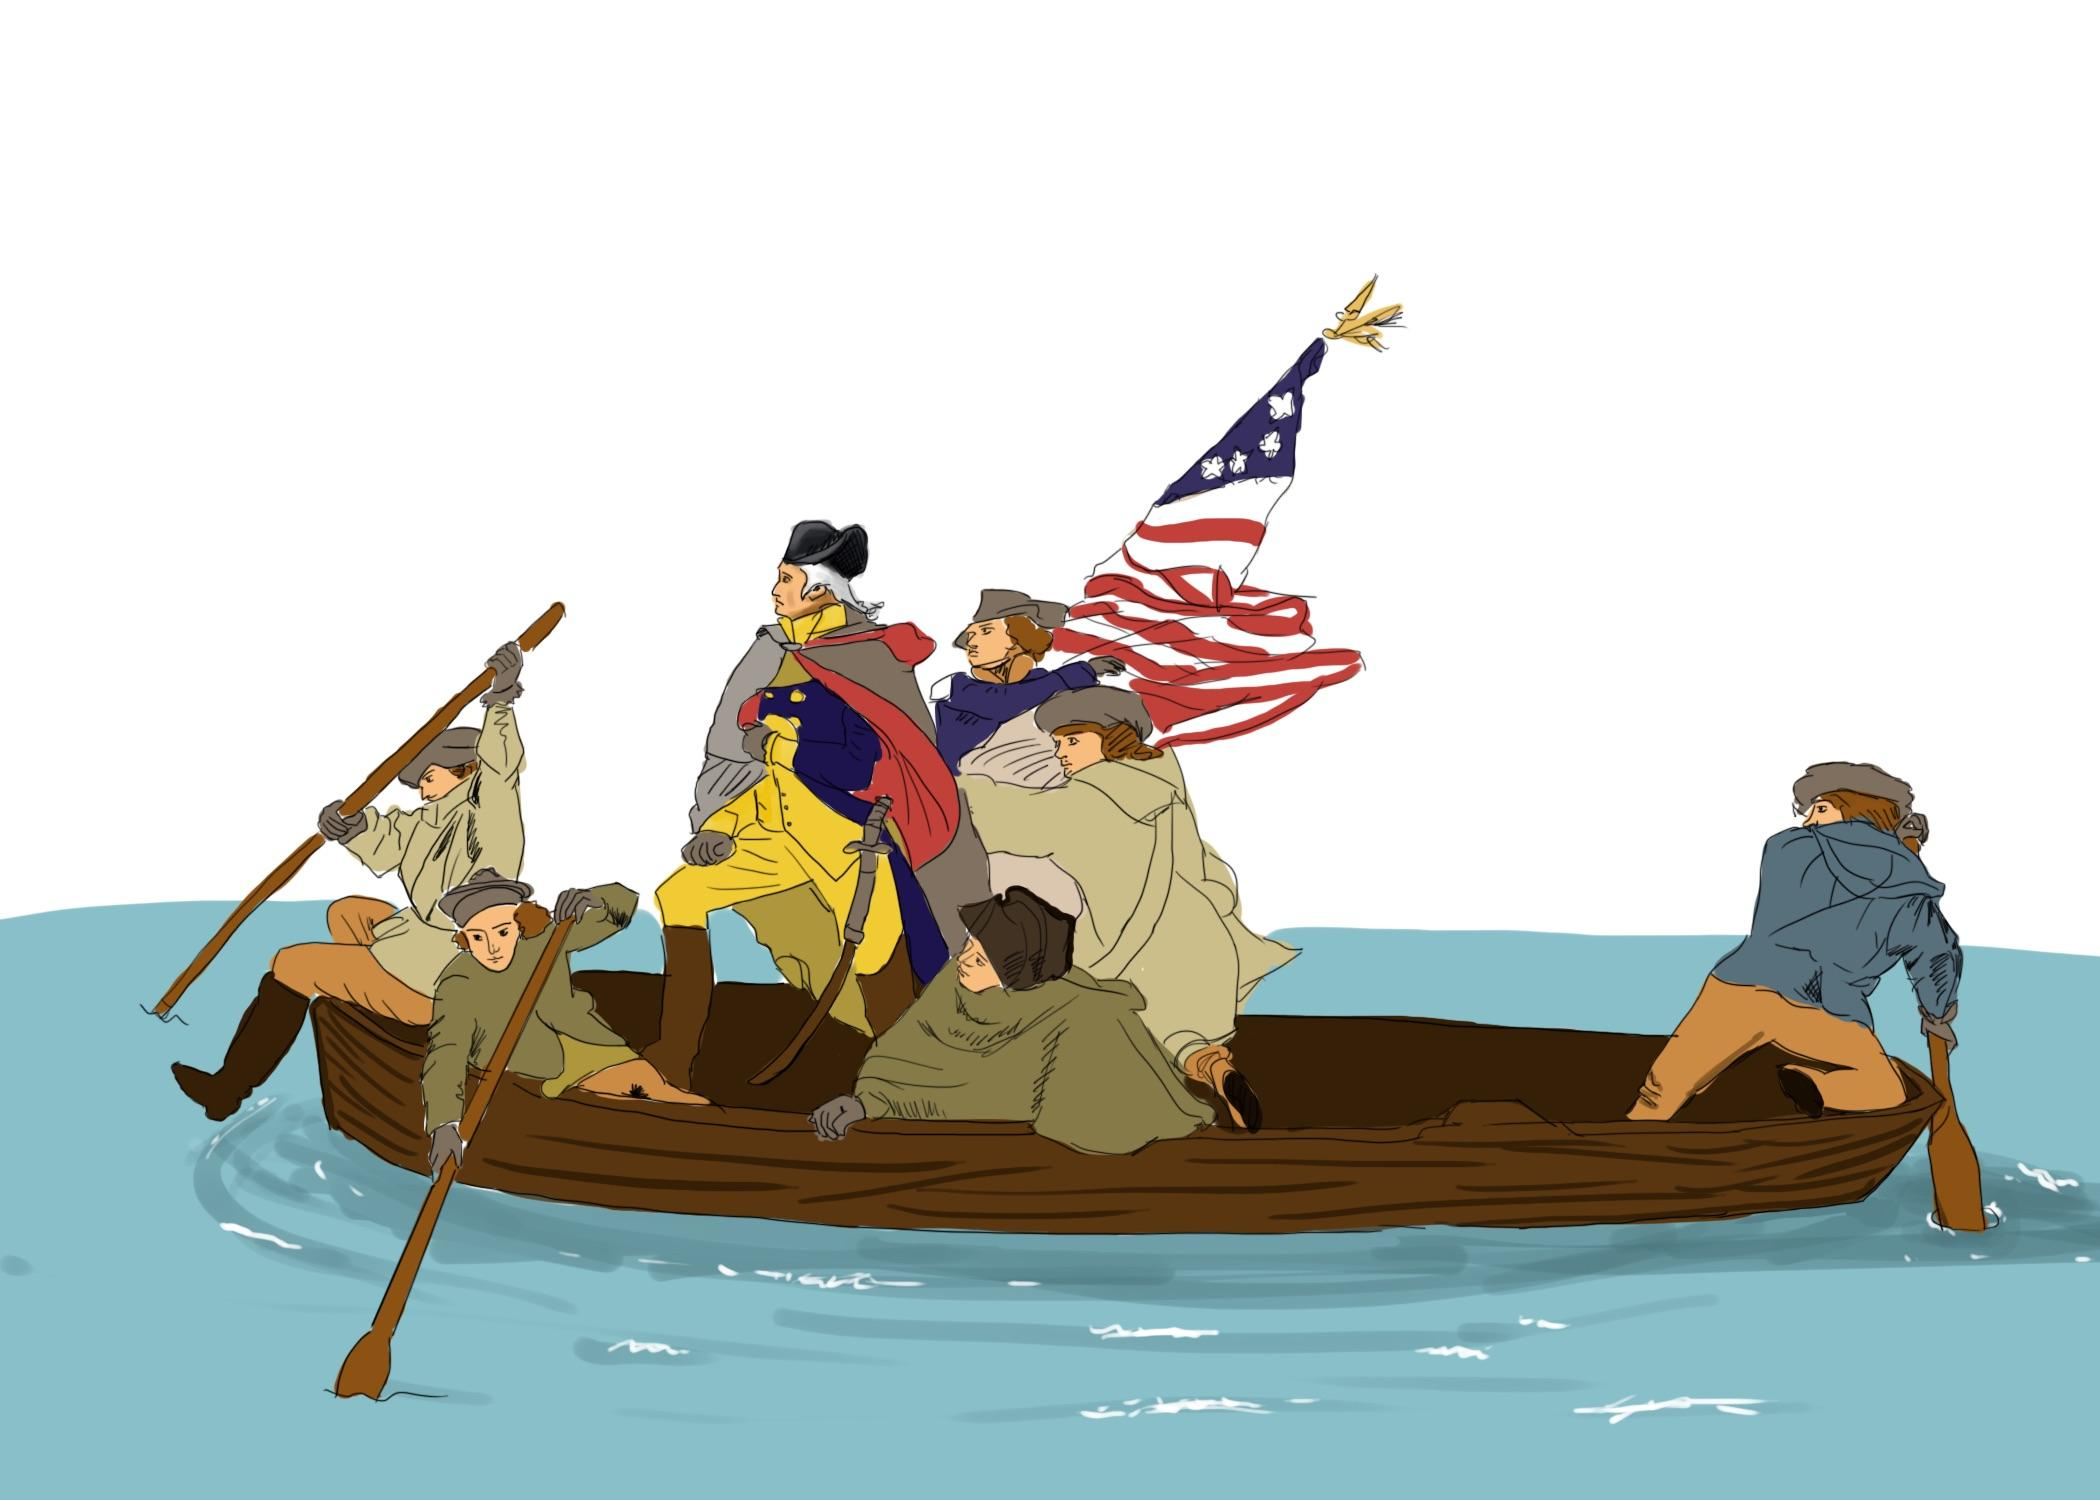 TEXTBOOK EVENT George Washington and his troops are portrayed as brave and strong soldiers on their way to defeating the British.